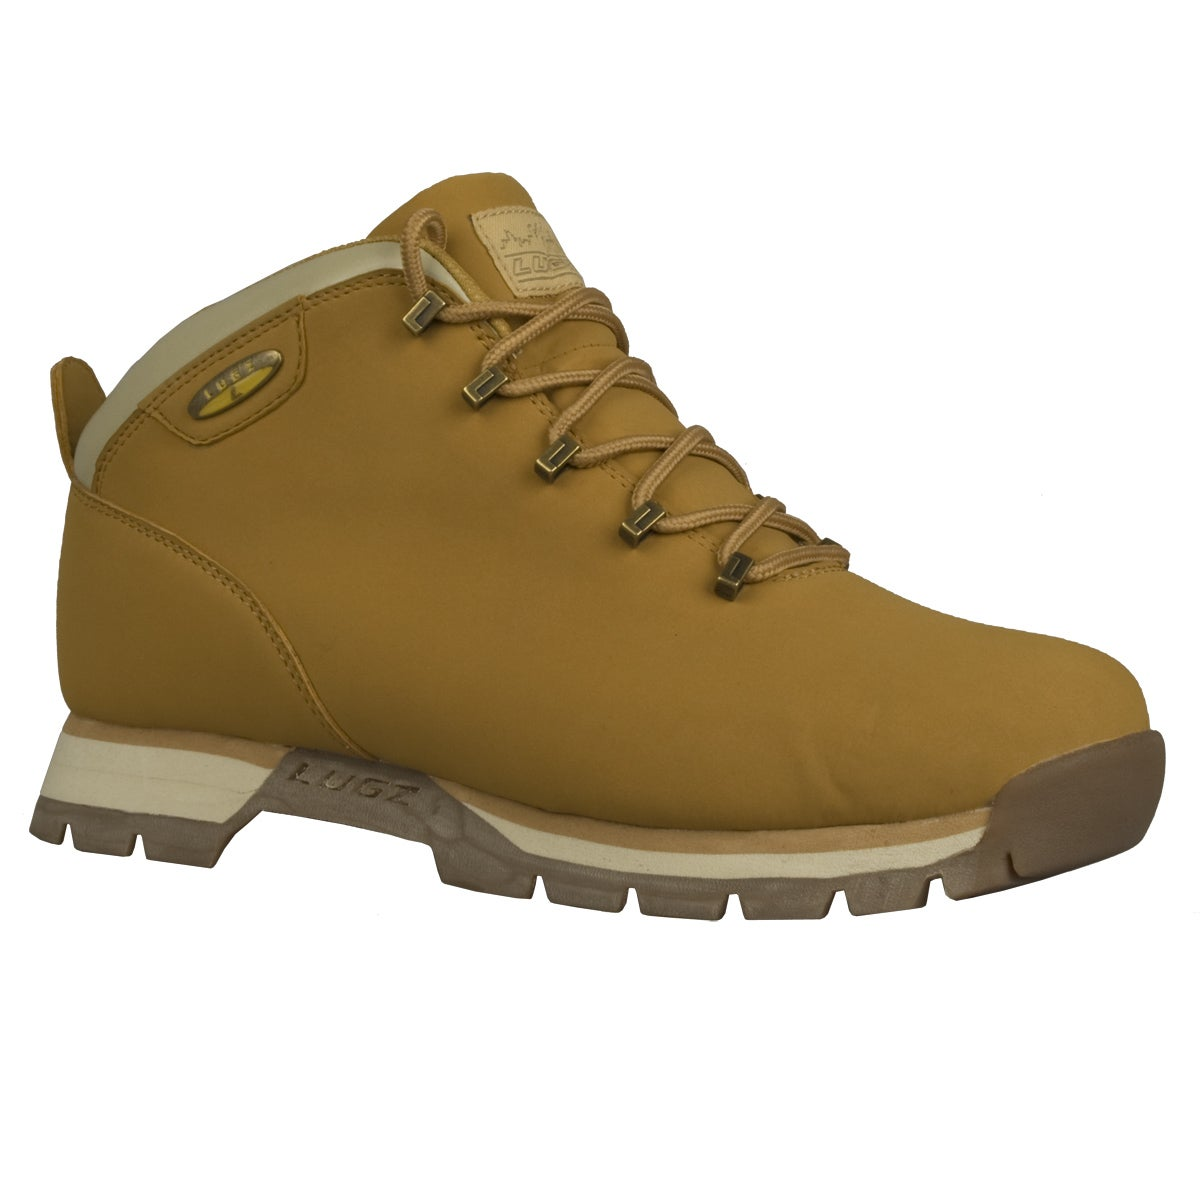 Lugz Men's wheat 'Jam II' Short Boots